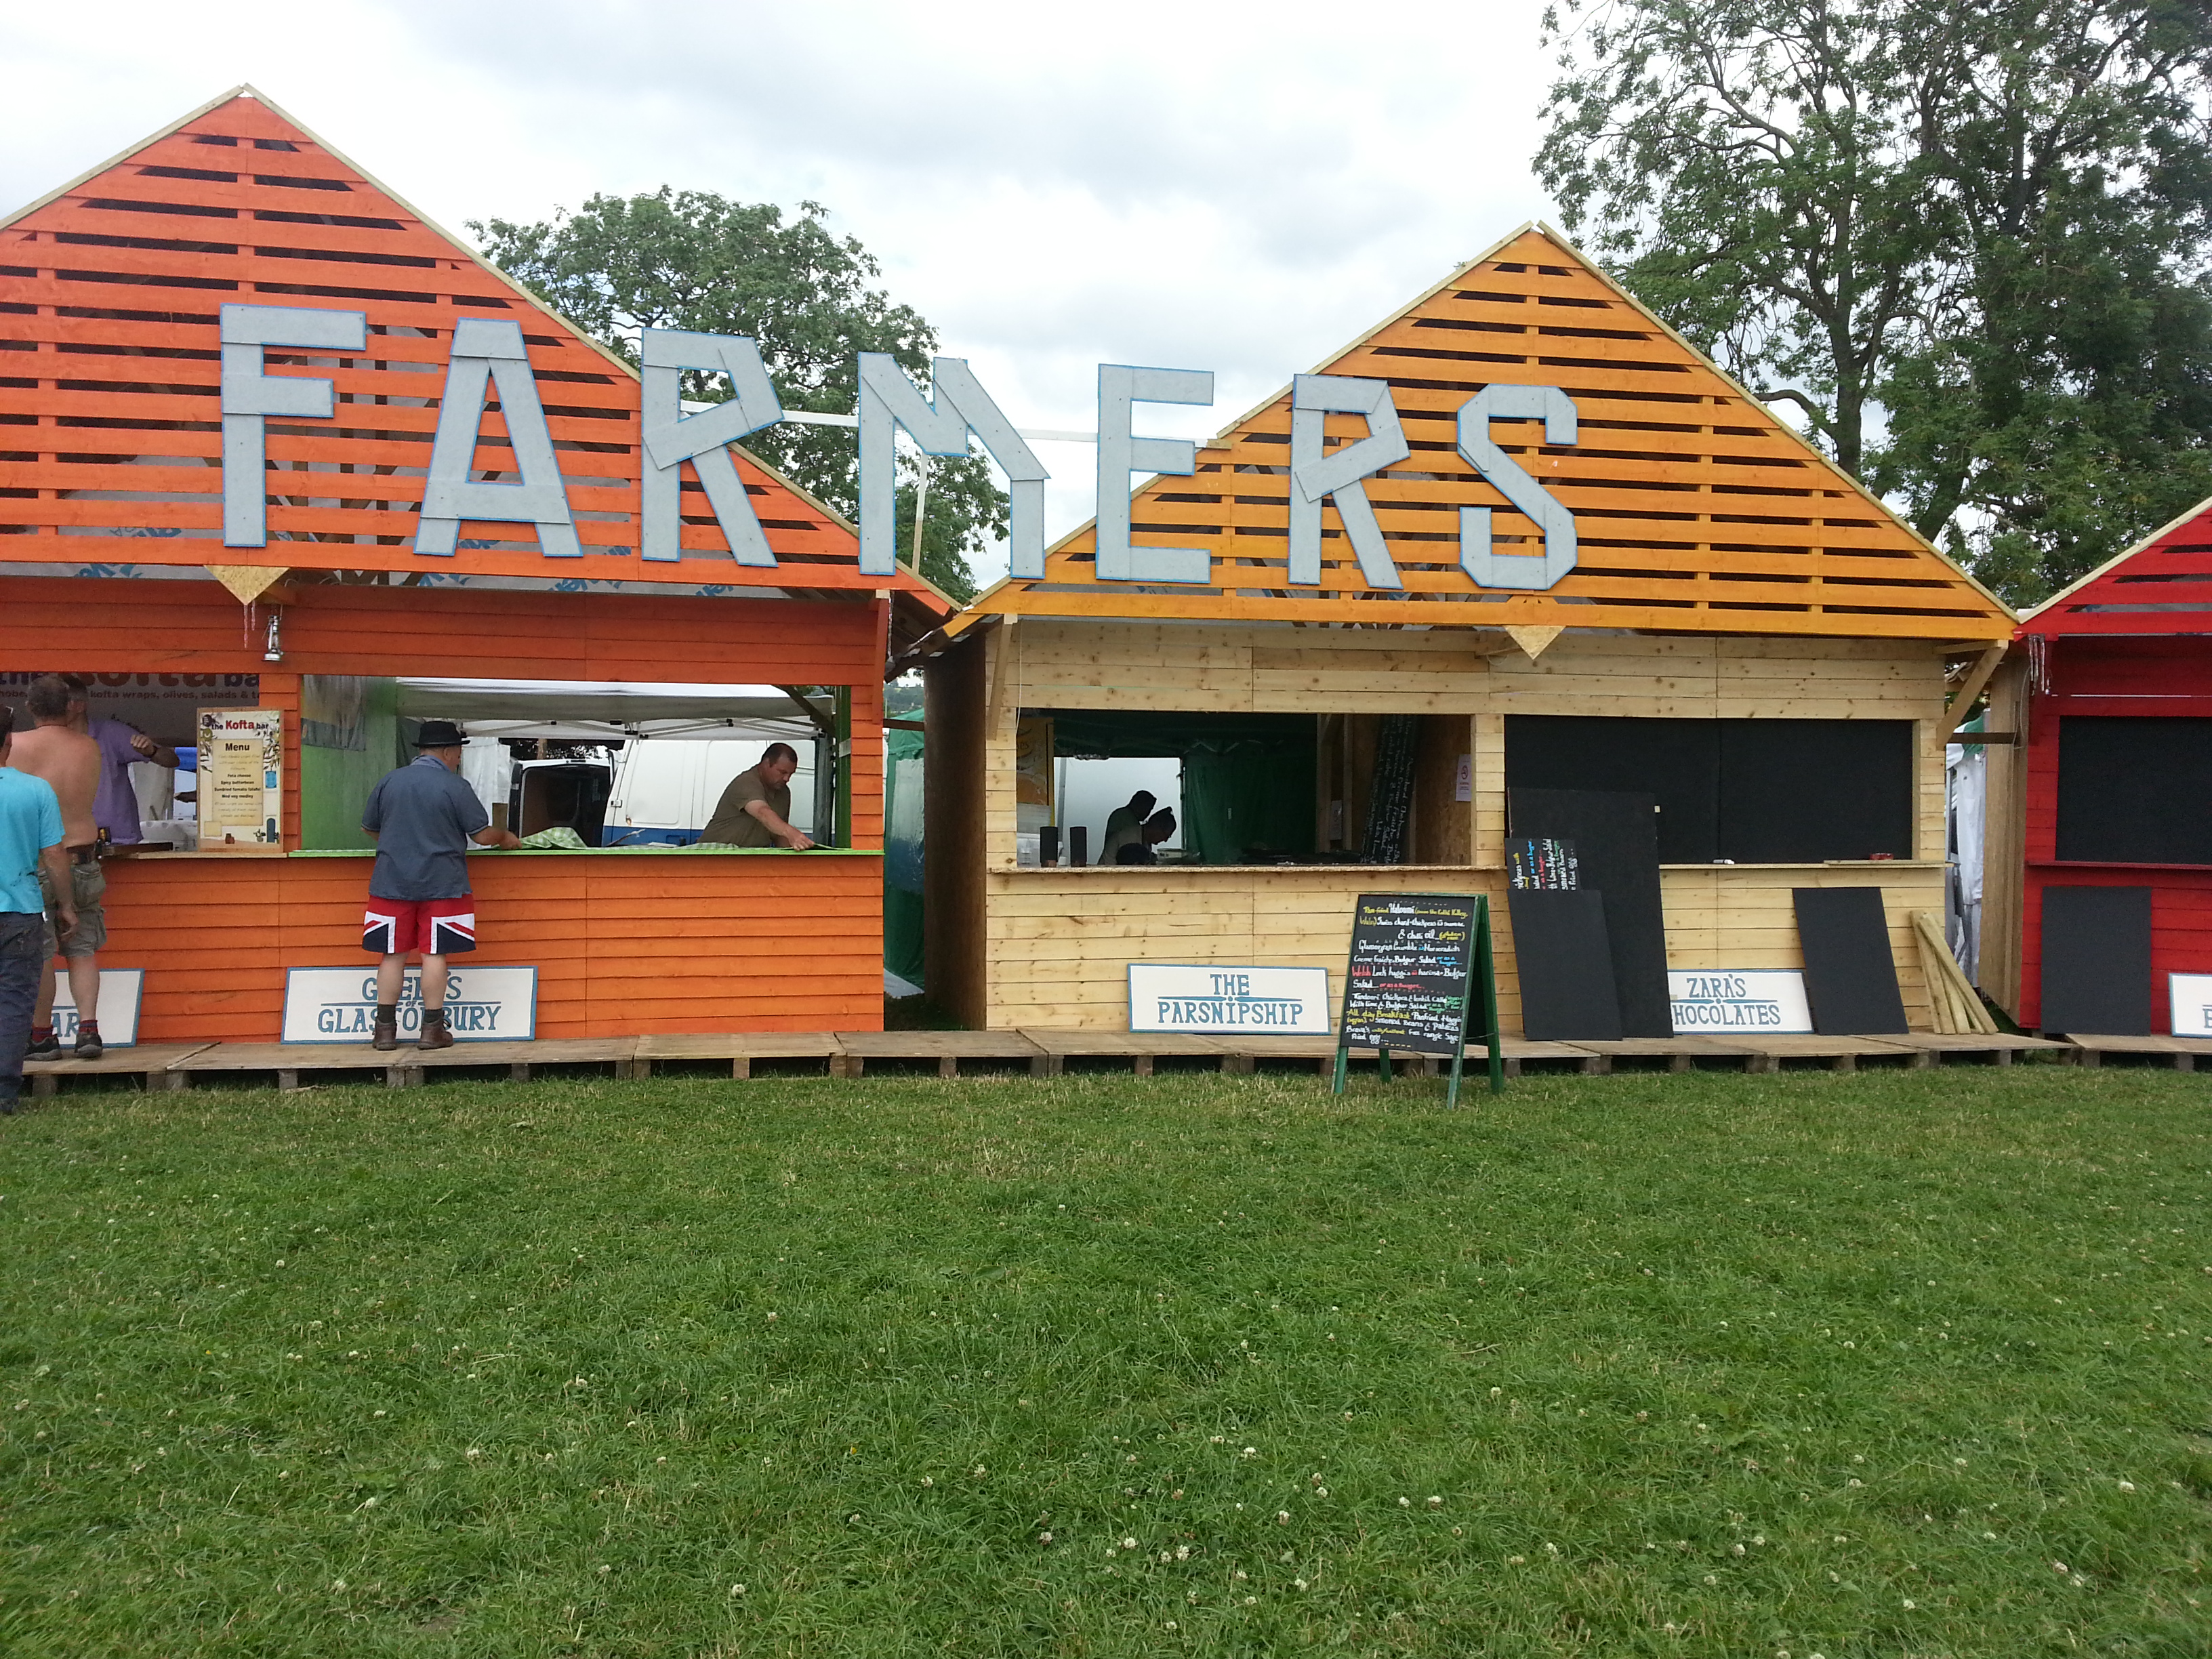 Pick up our foods at new motorway services and Glastonbury Festival's Farmers Market!